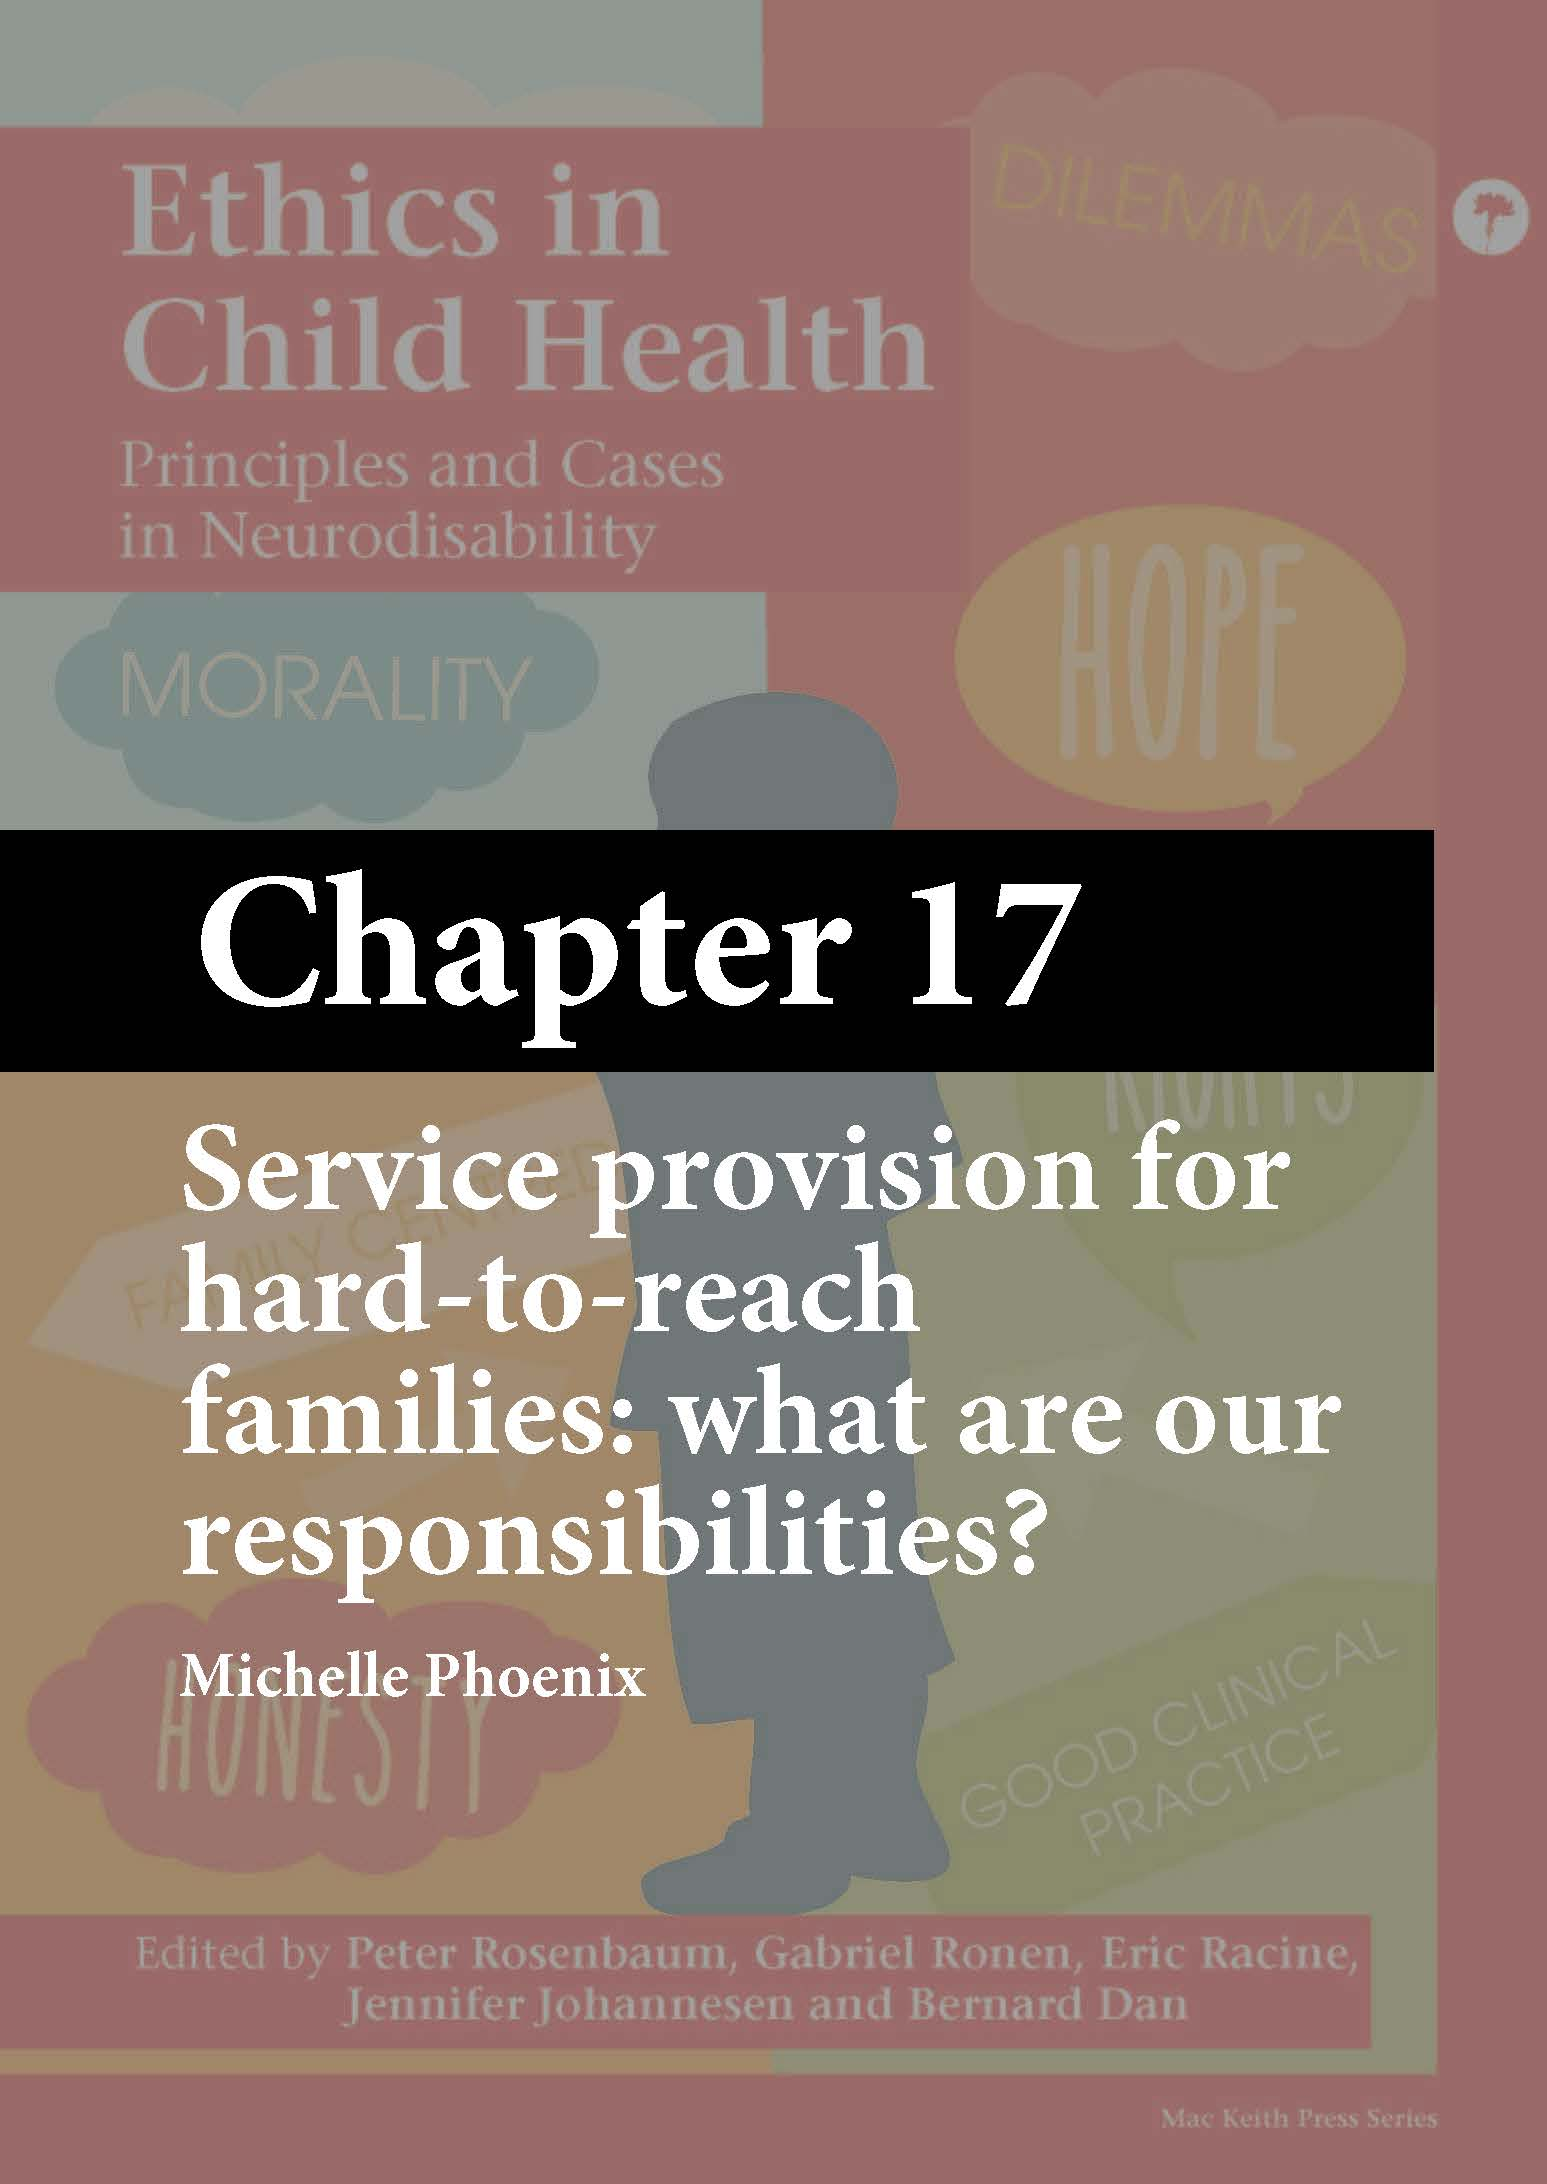 Ethics in Child Health, Rosenbaum, Chapter 17 cover